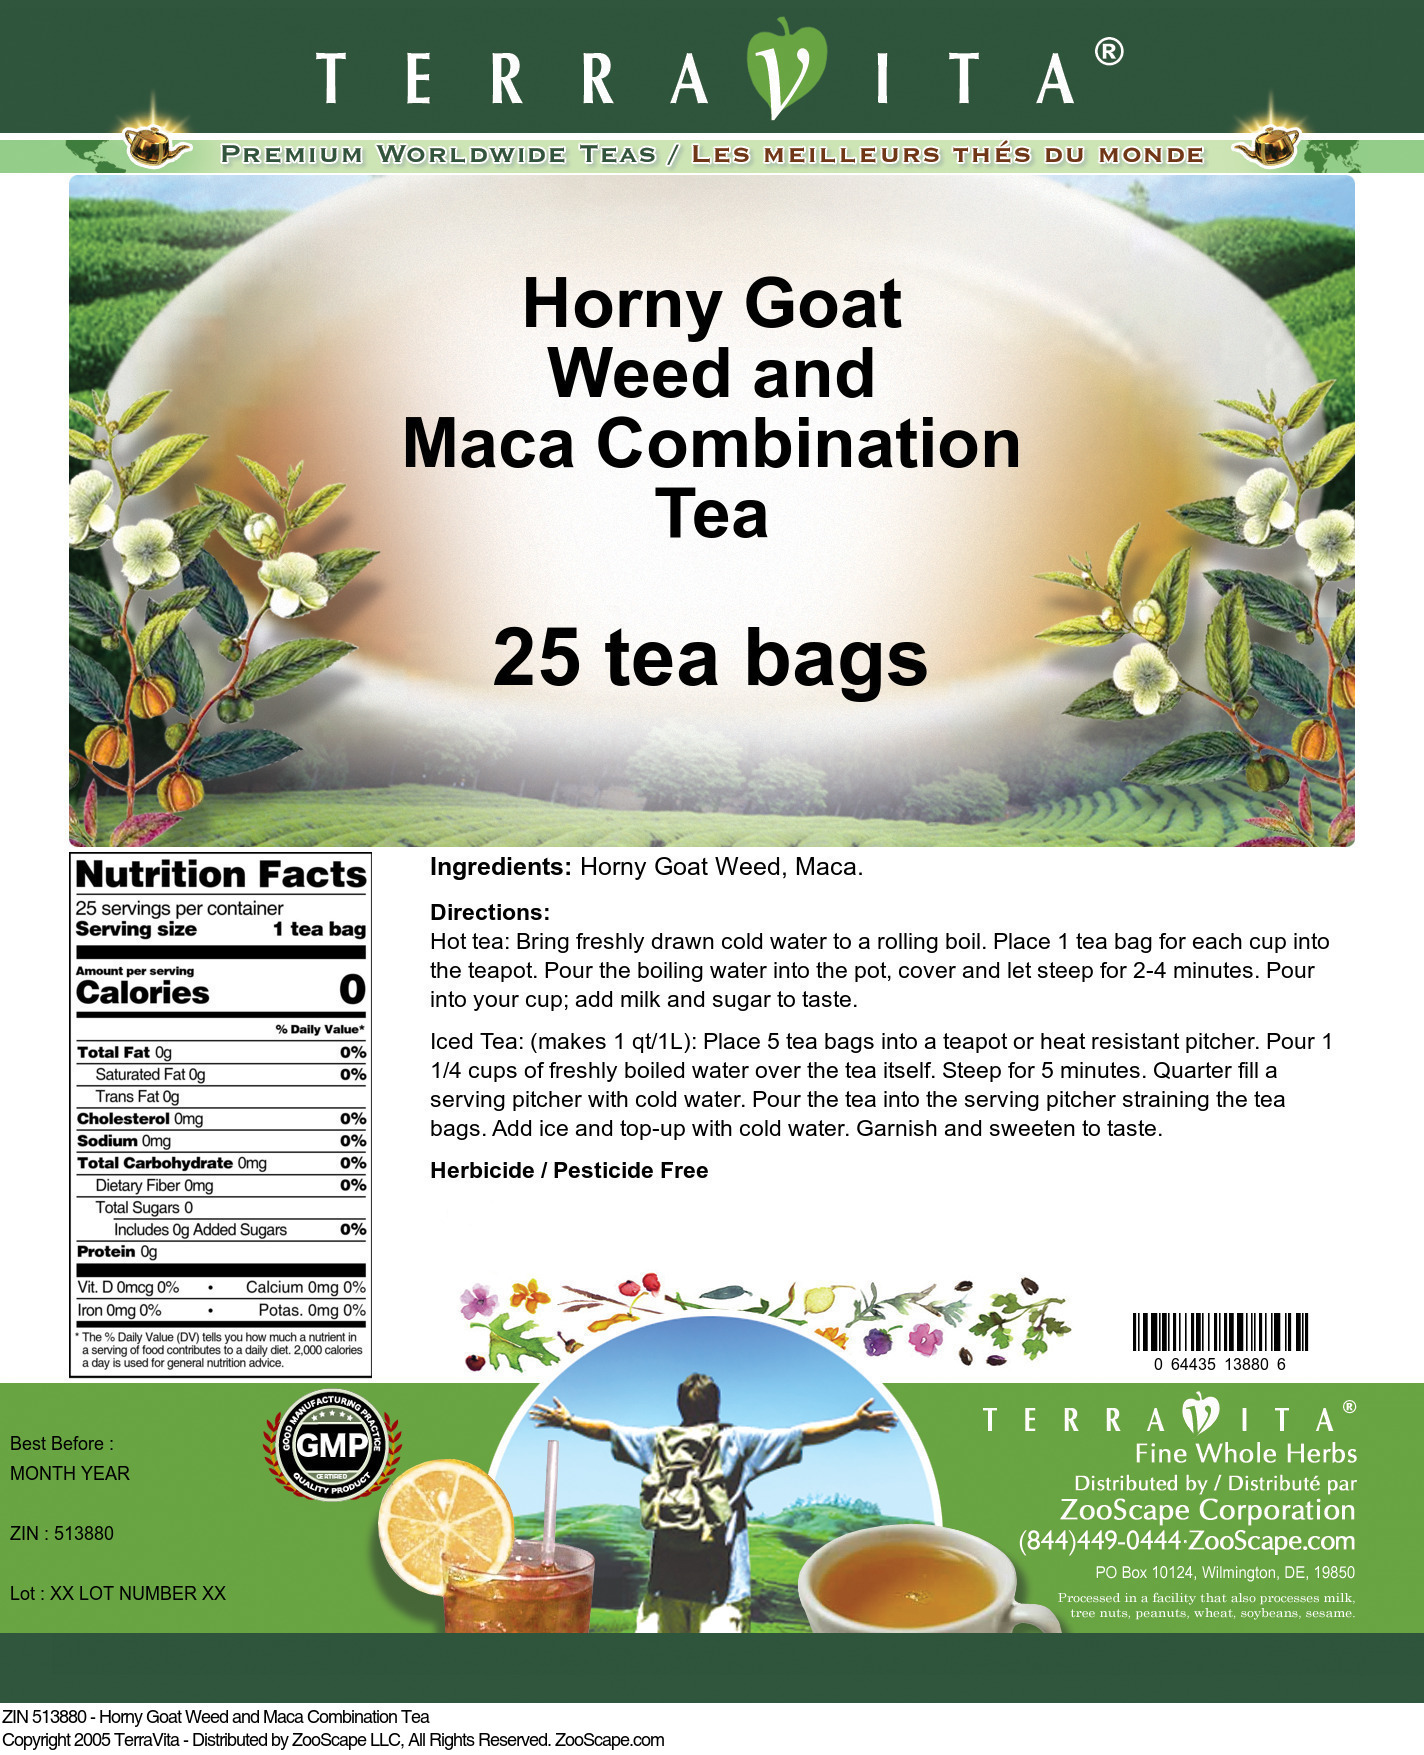 Horny Goat Weed and Maca Combination Tea